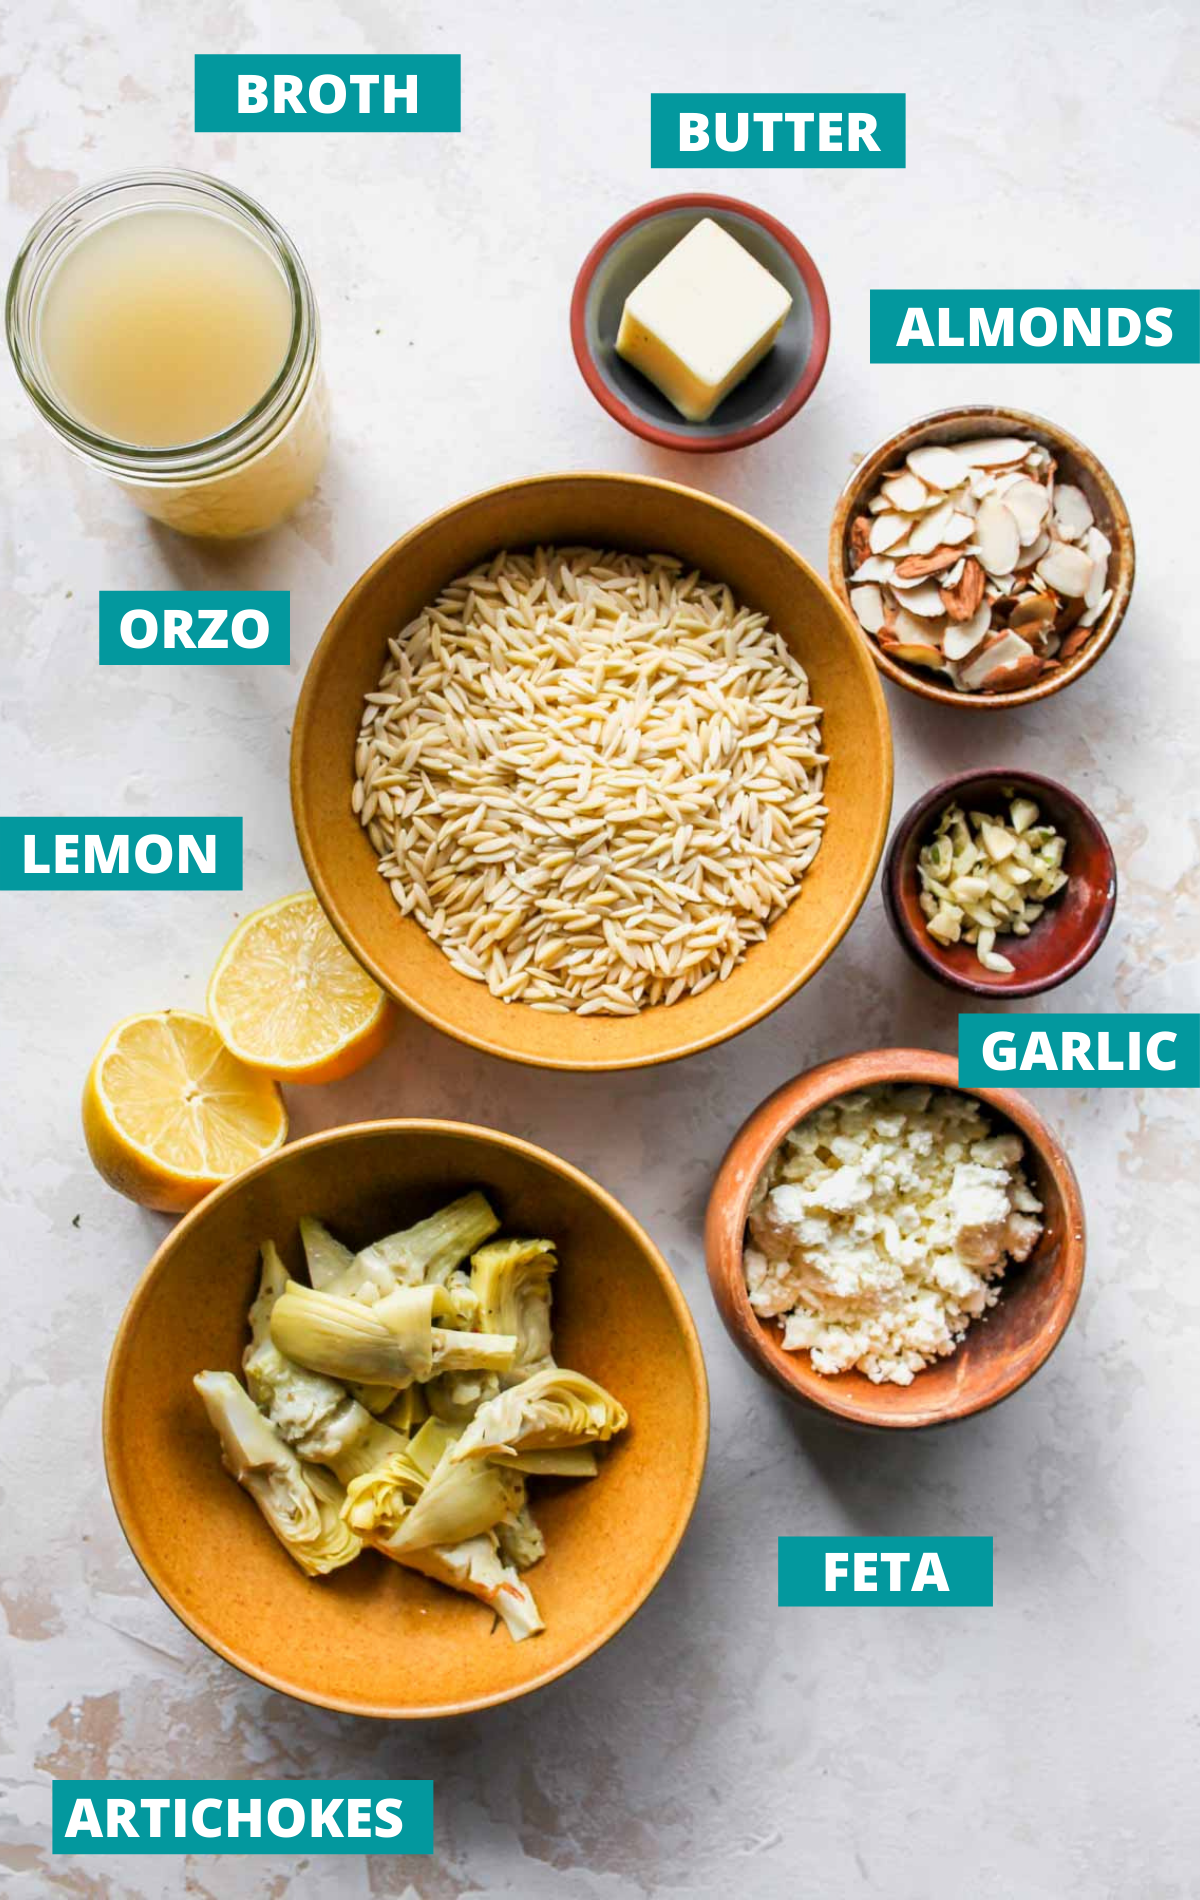 Orzo salad ingredients in separate bowls with blue labels